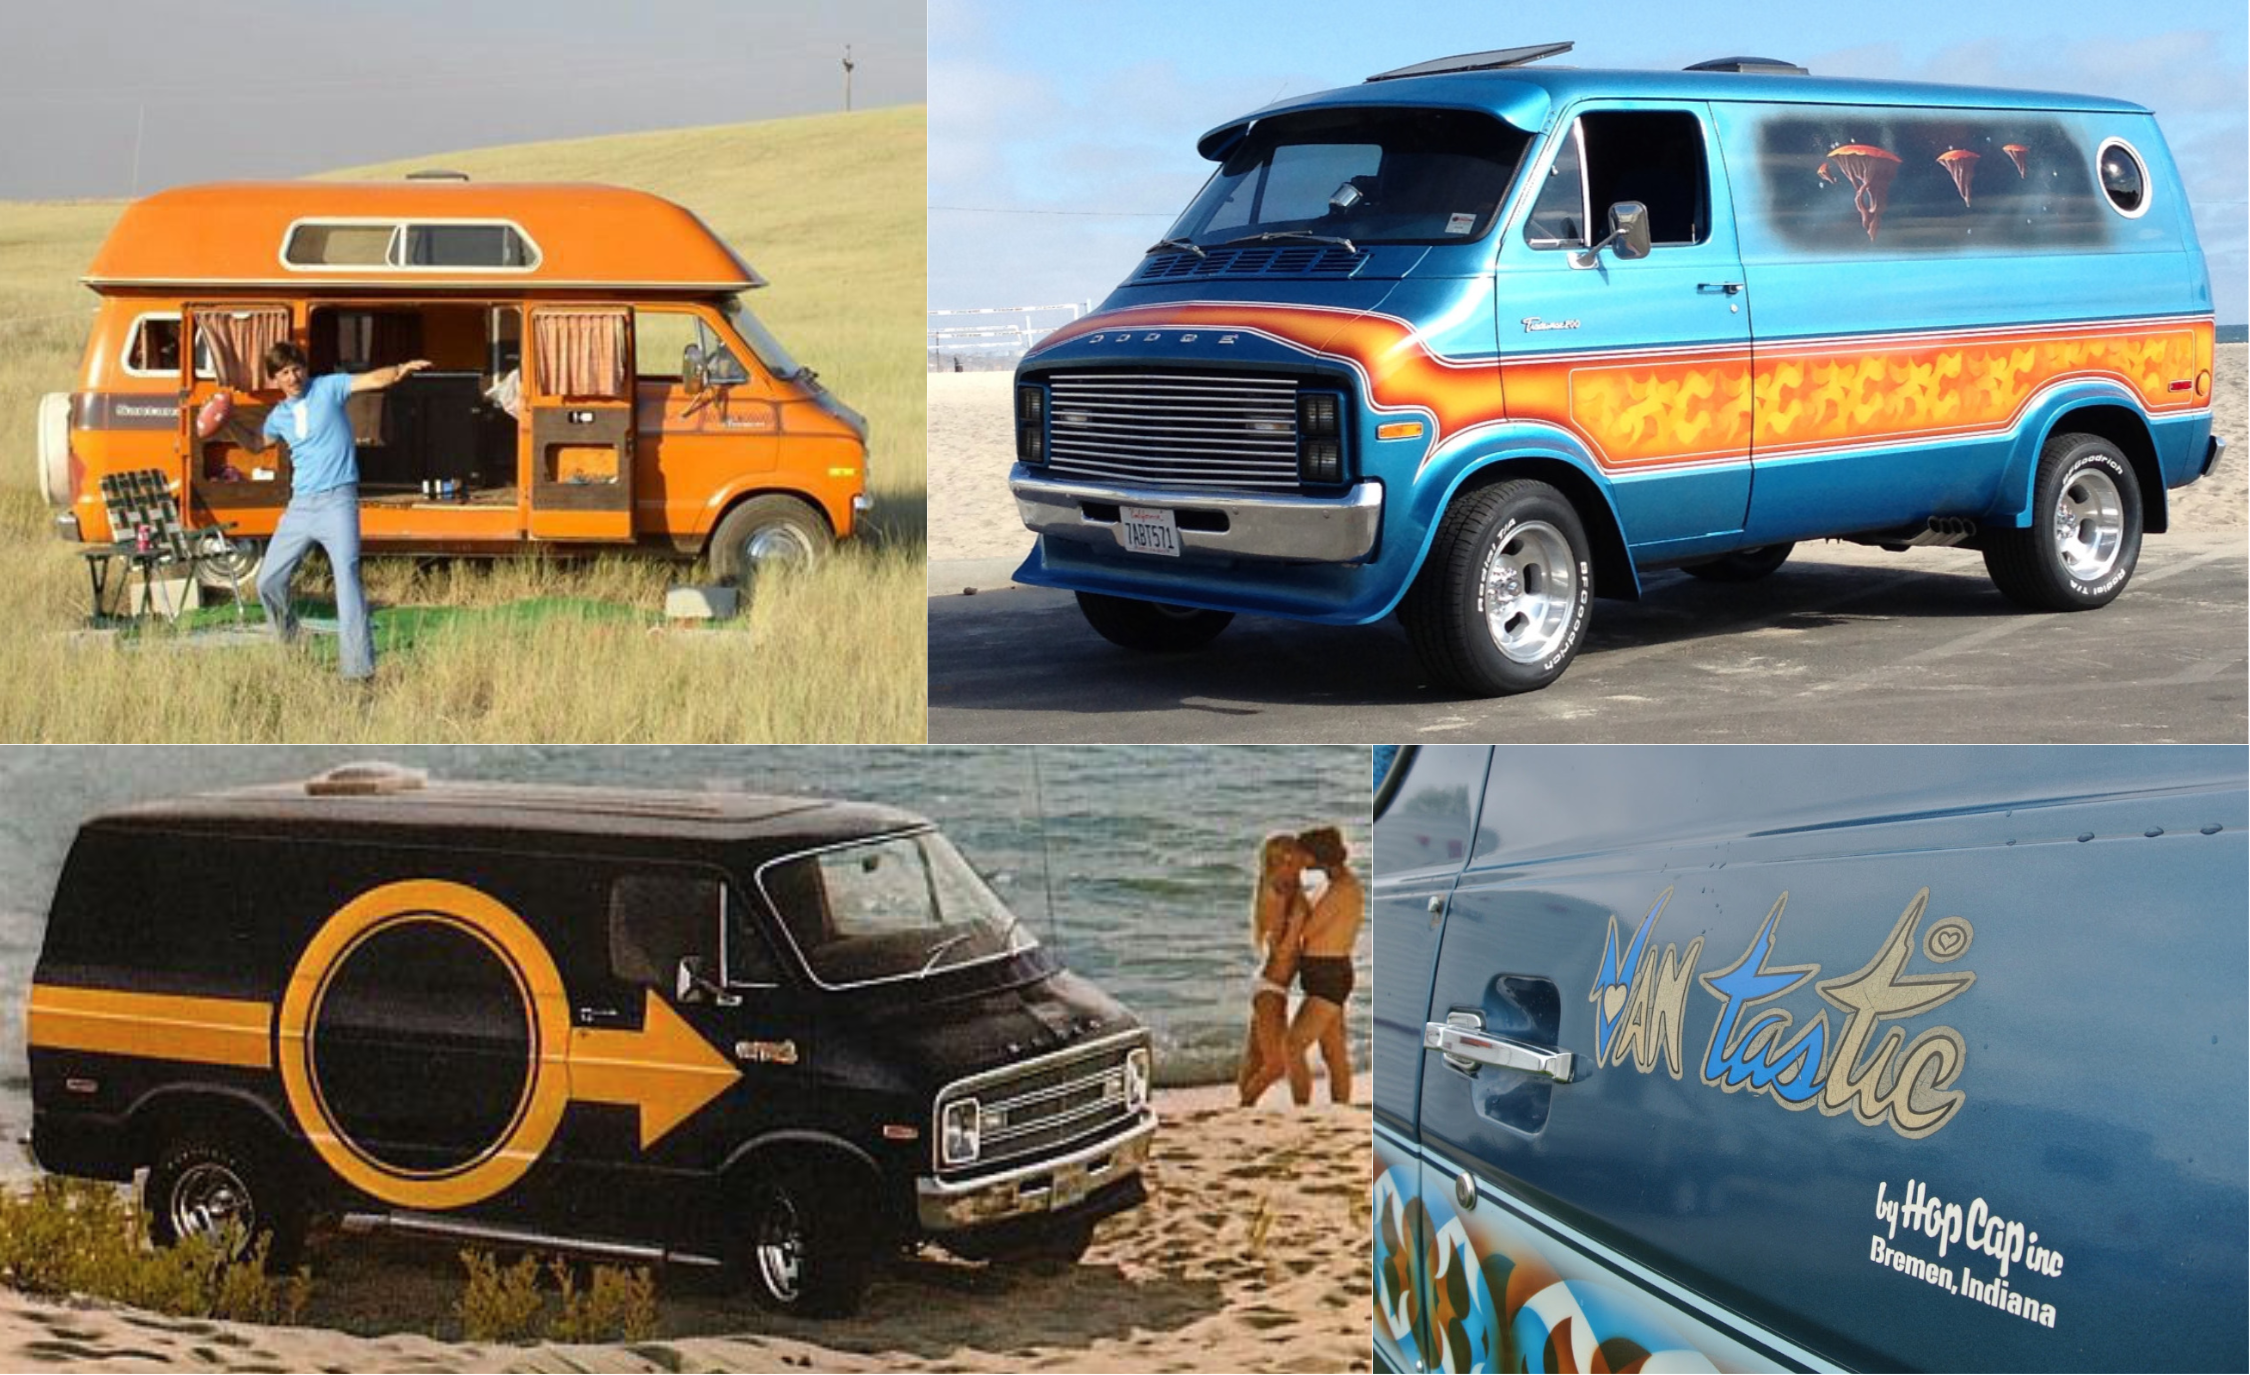 Raddest Factory Custom And Small Batch Production Vans Of The 1970s